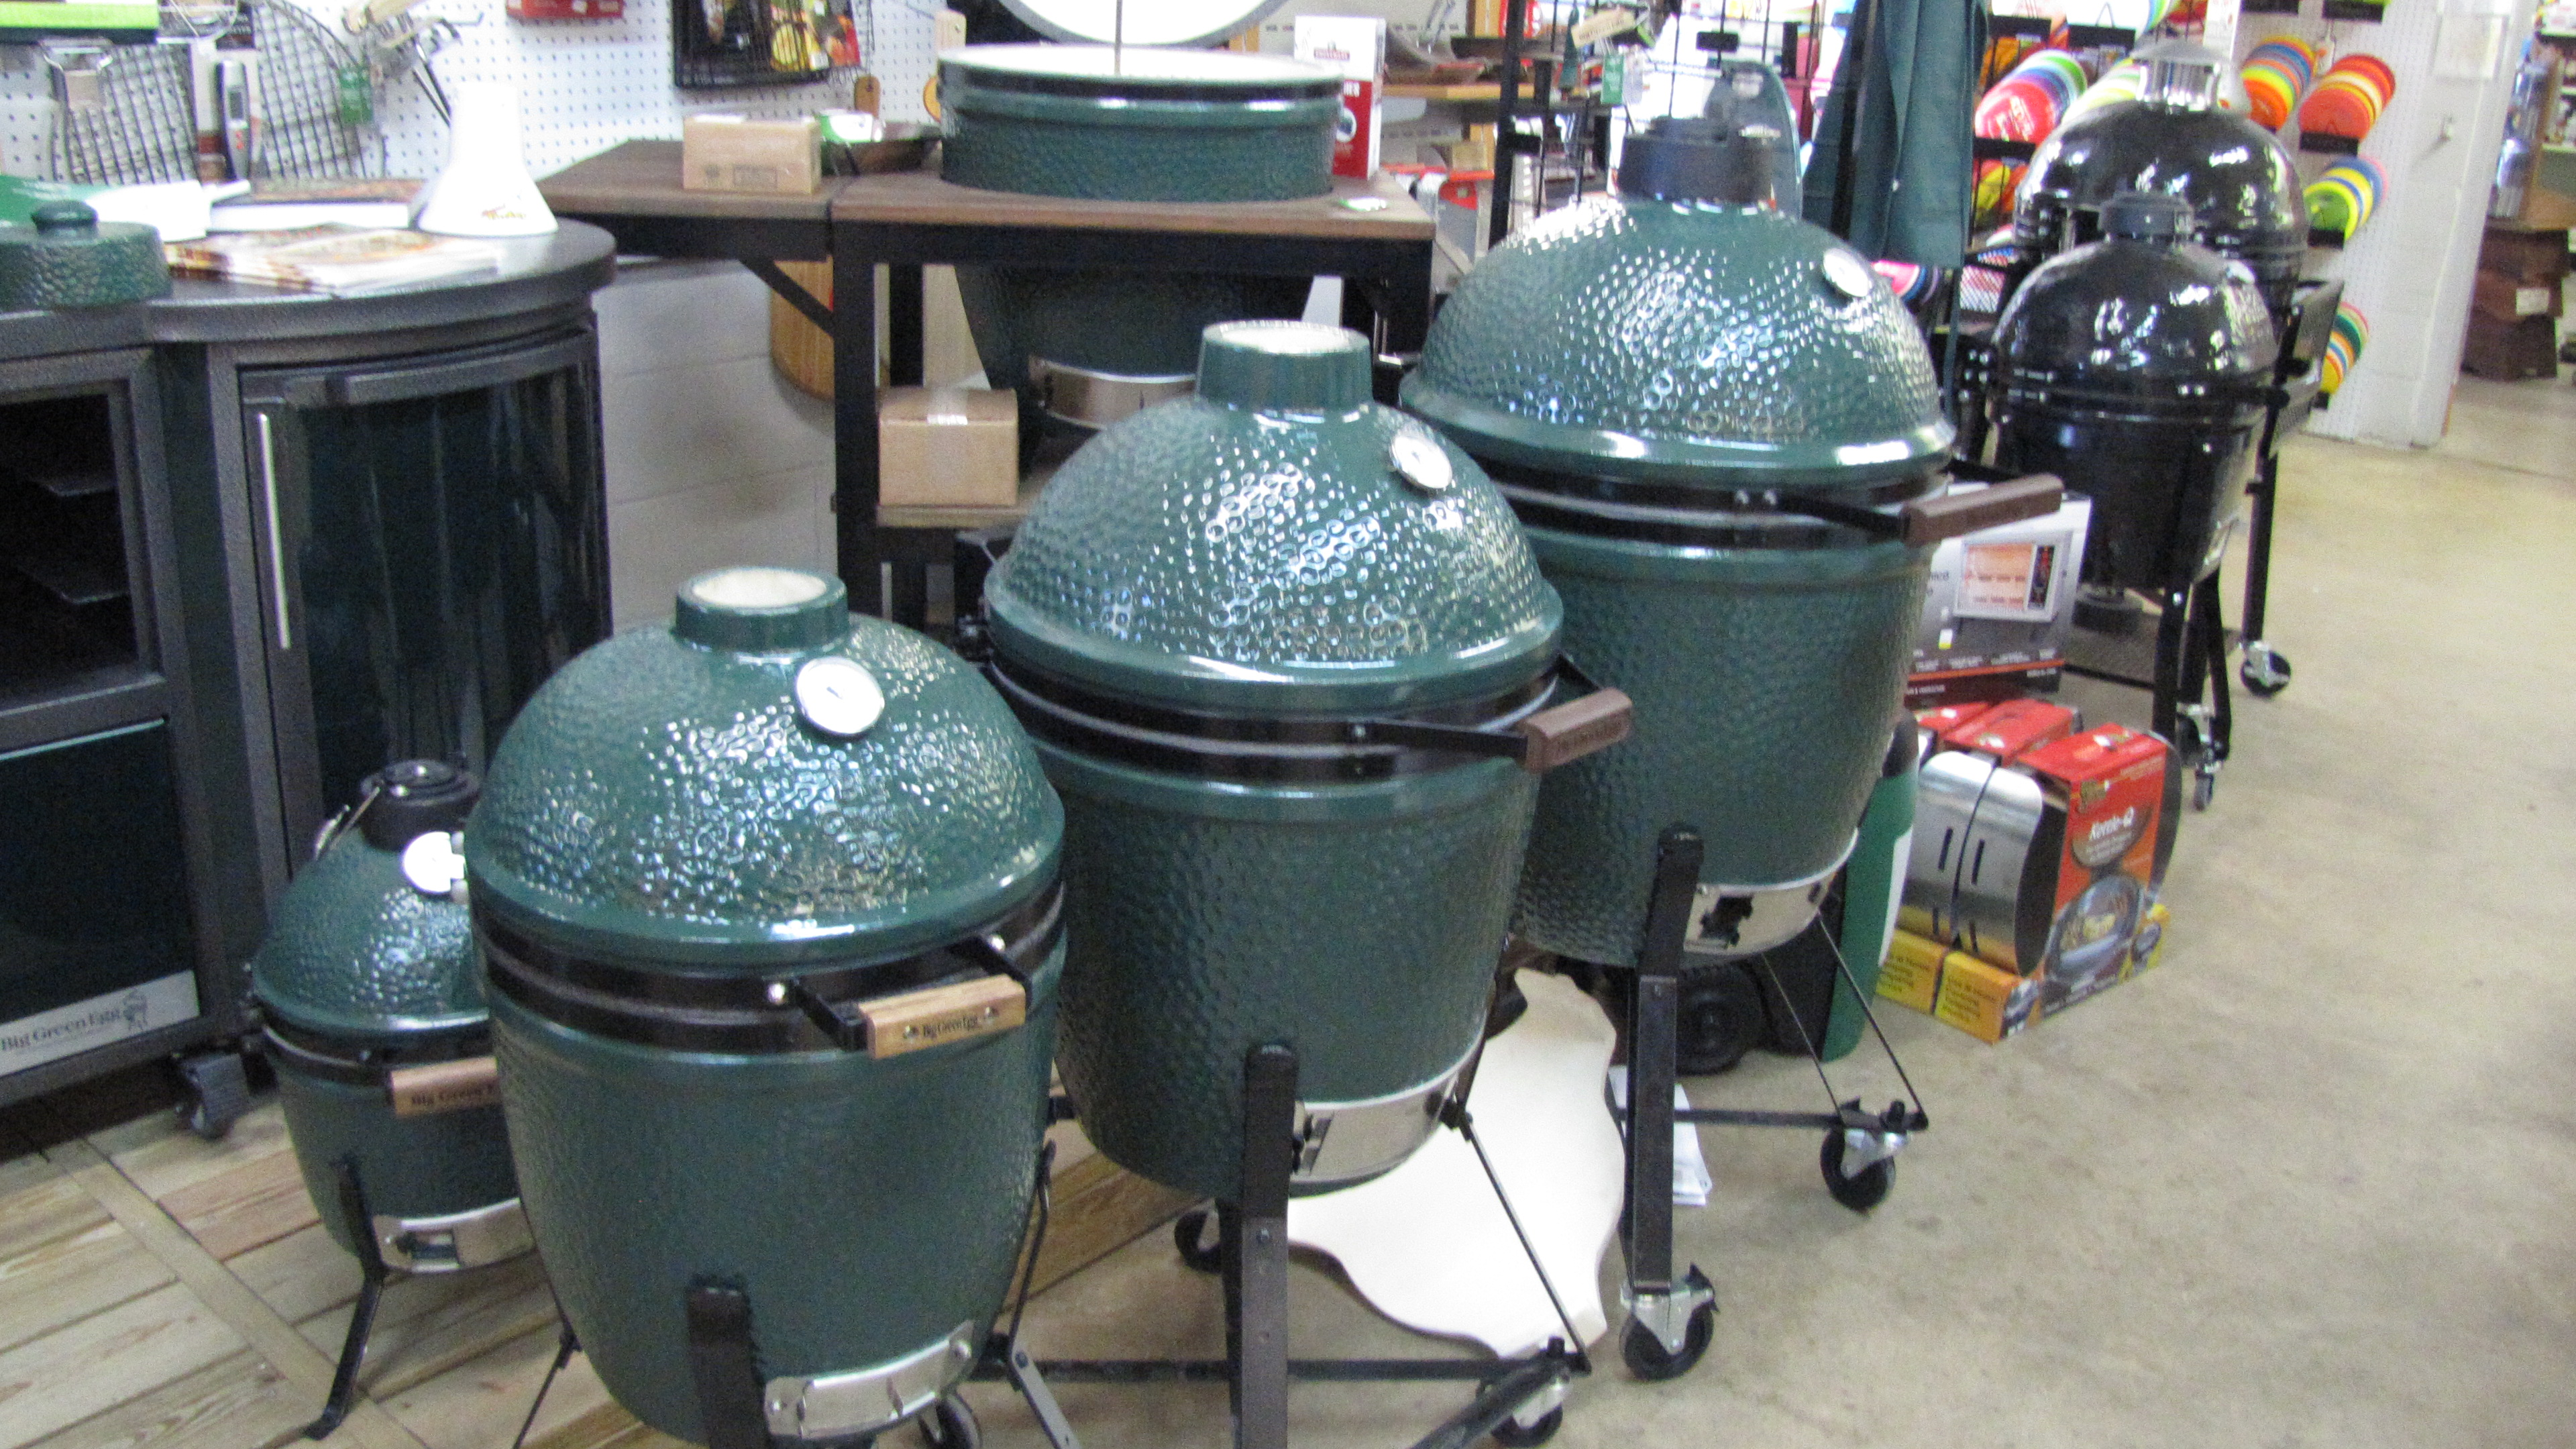 Big Green Egg Grill Foreman S General Store